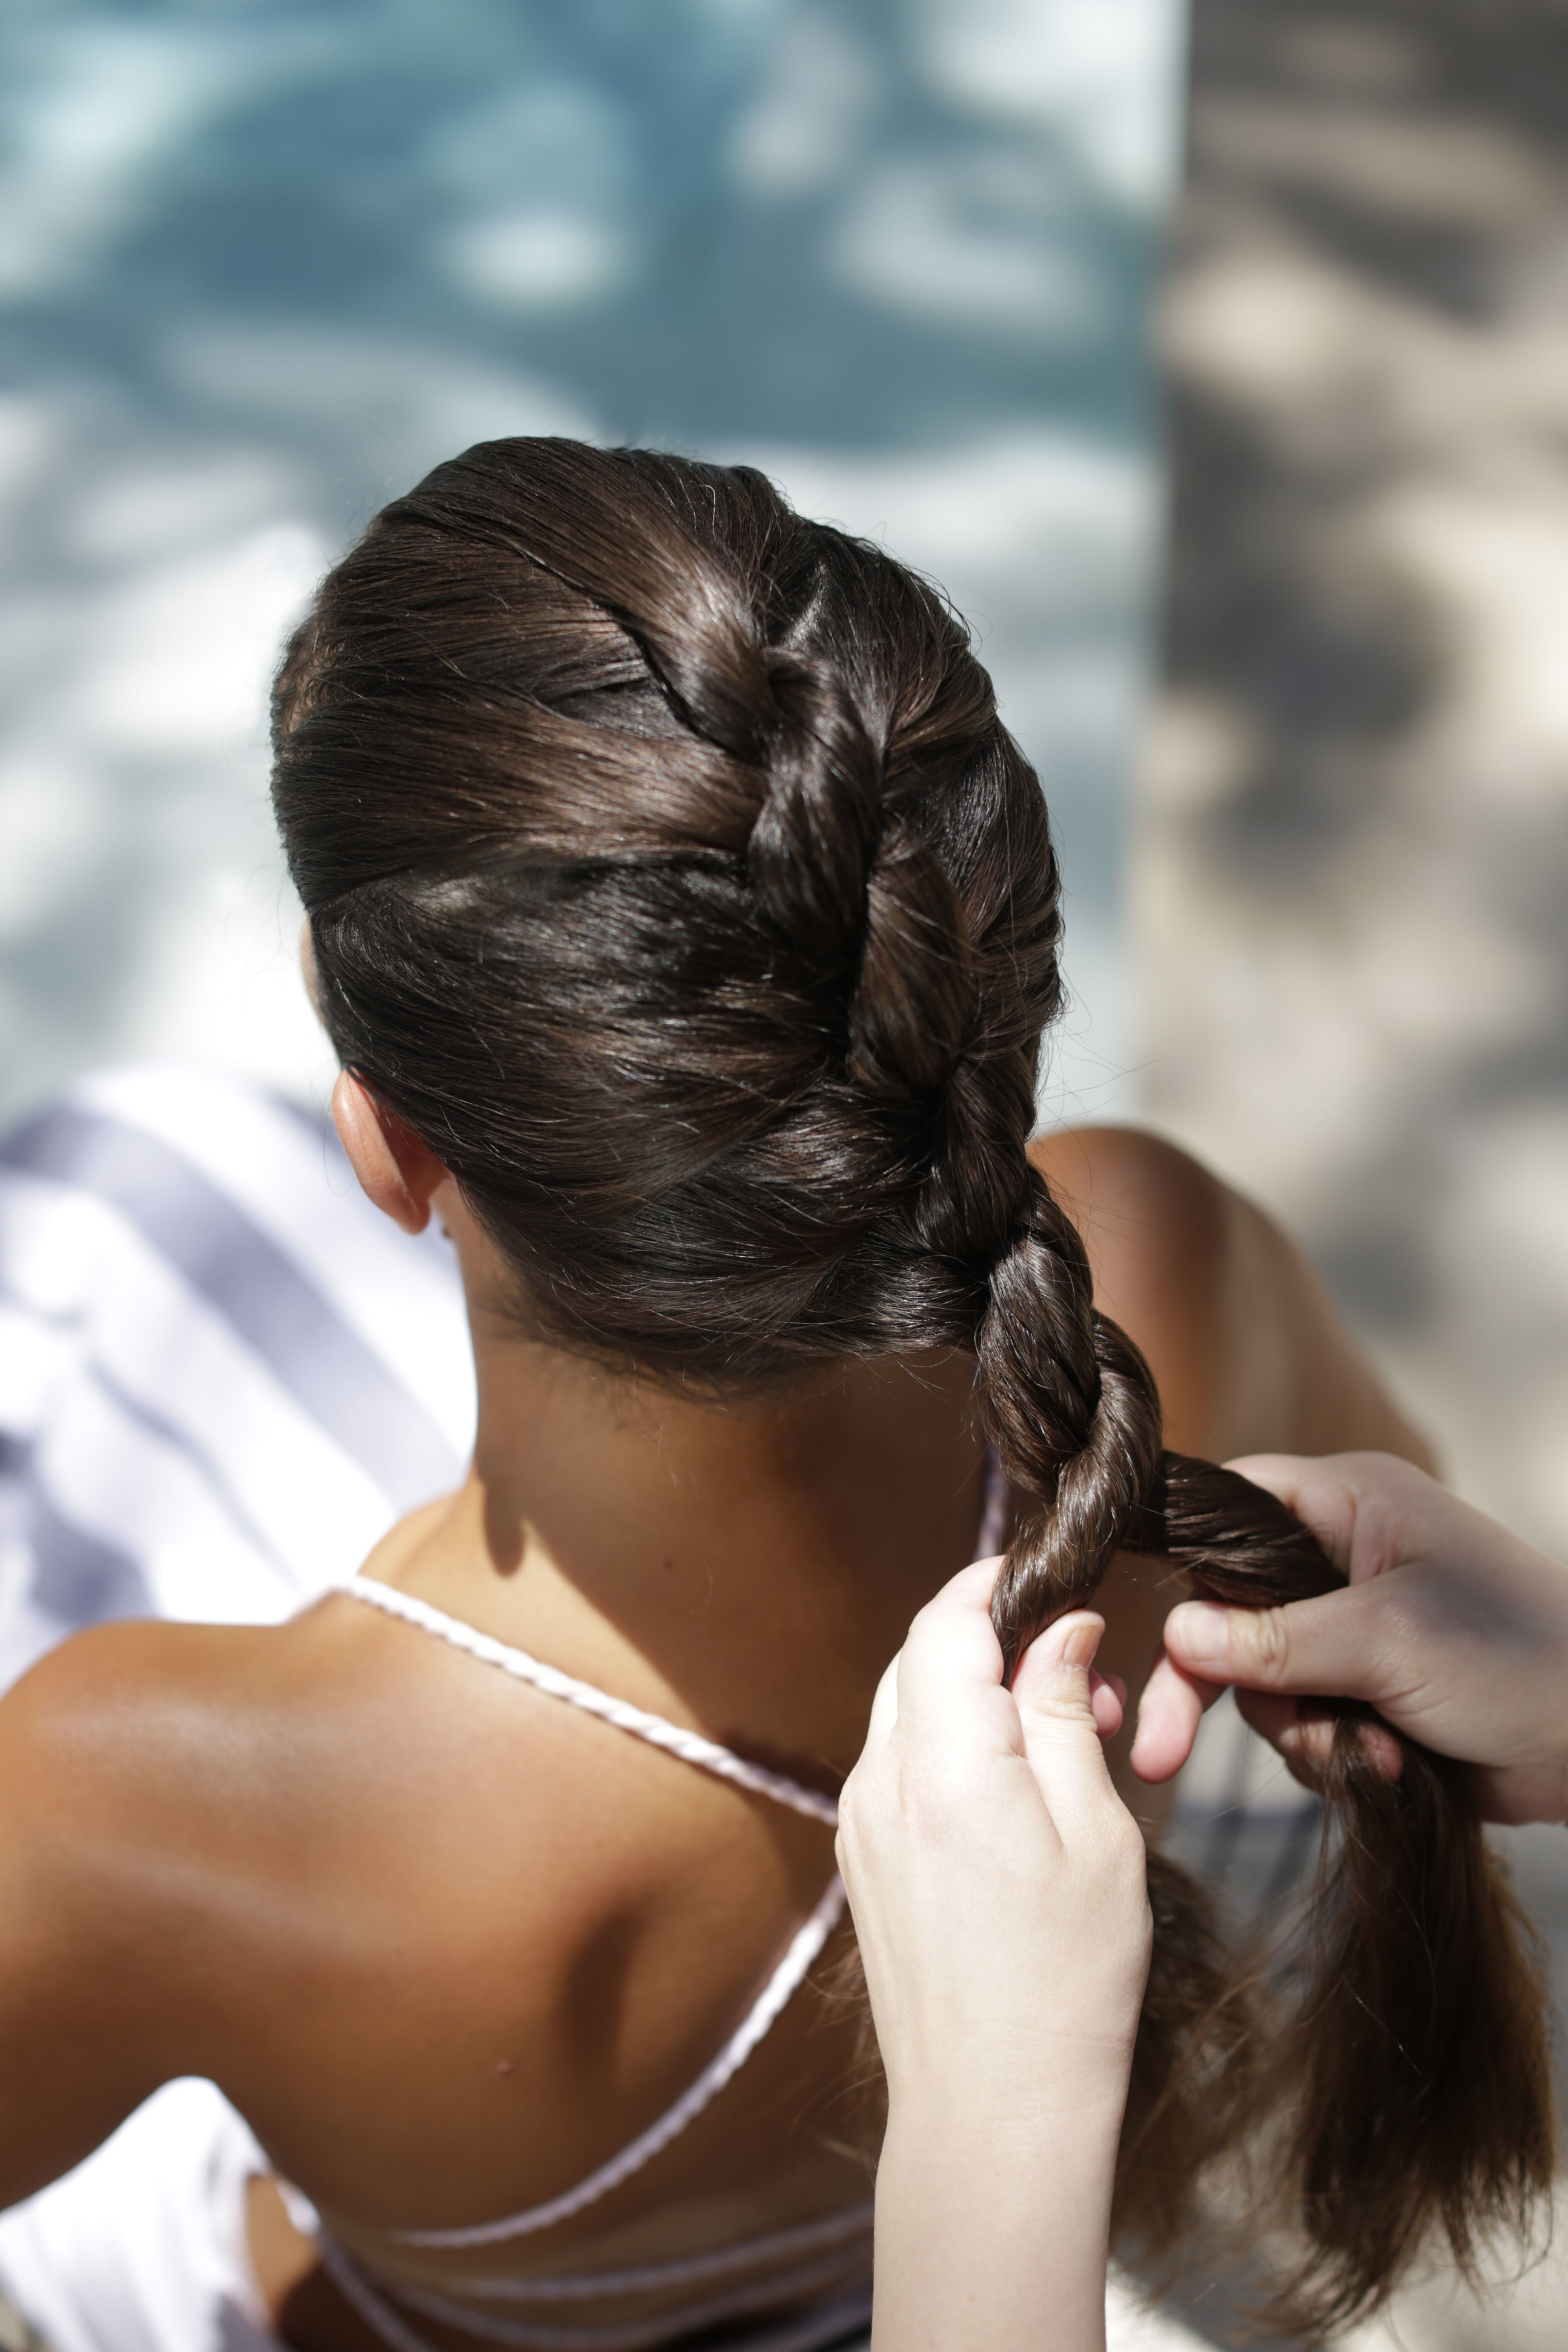 - Twist each strand of hair clockwise as you wrap them around each other